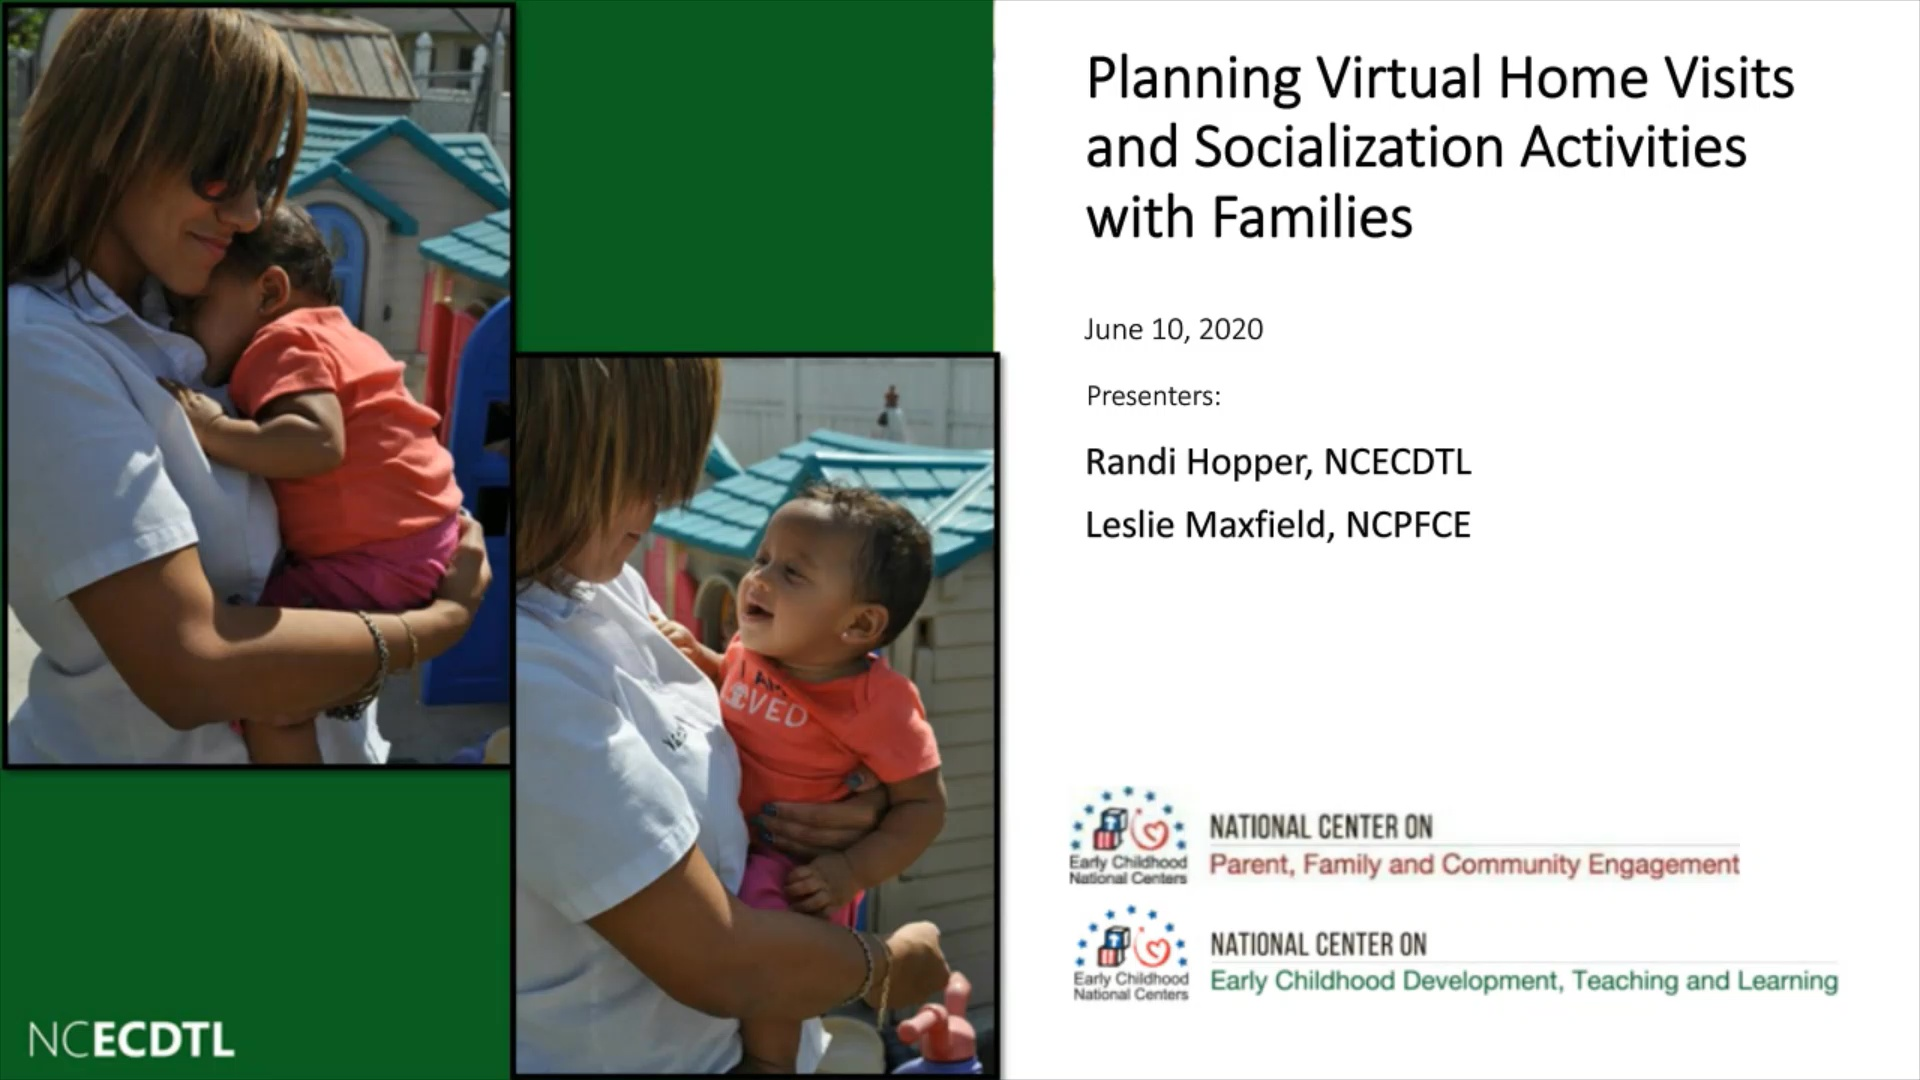 Planning Virtual Home Visits and Socialization Activities with Families